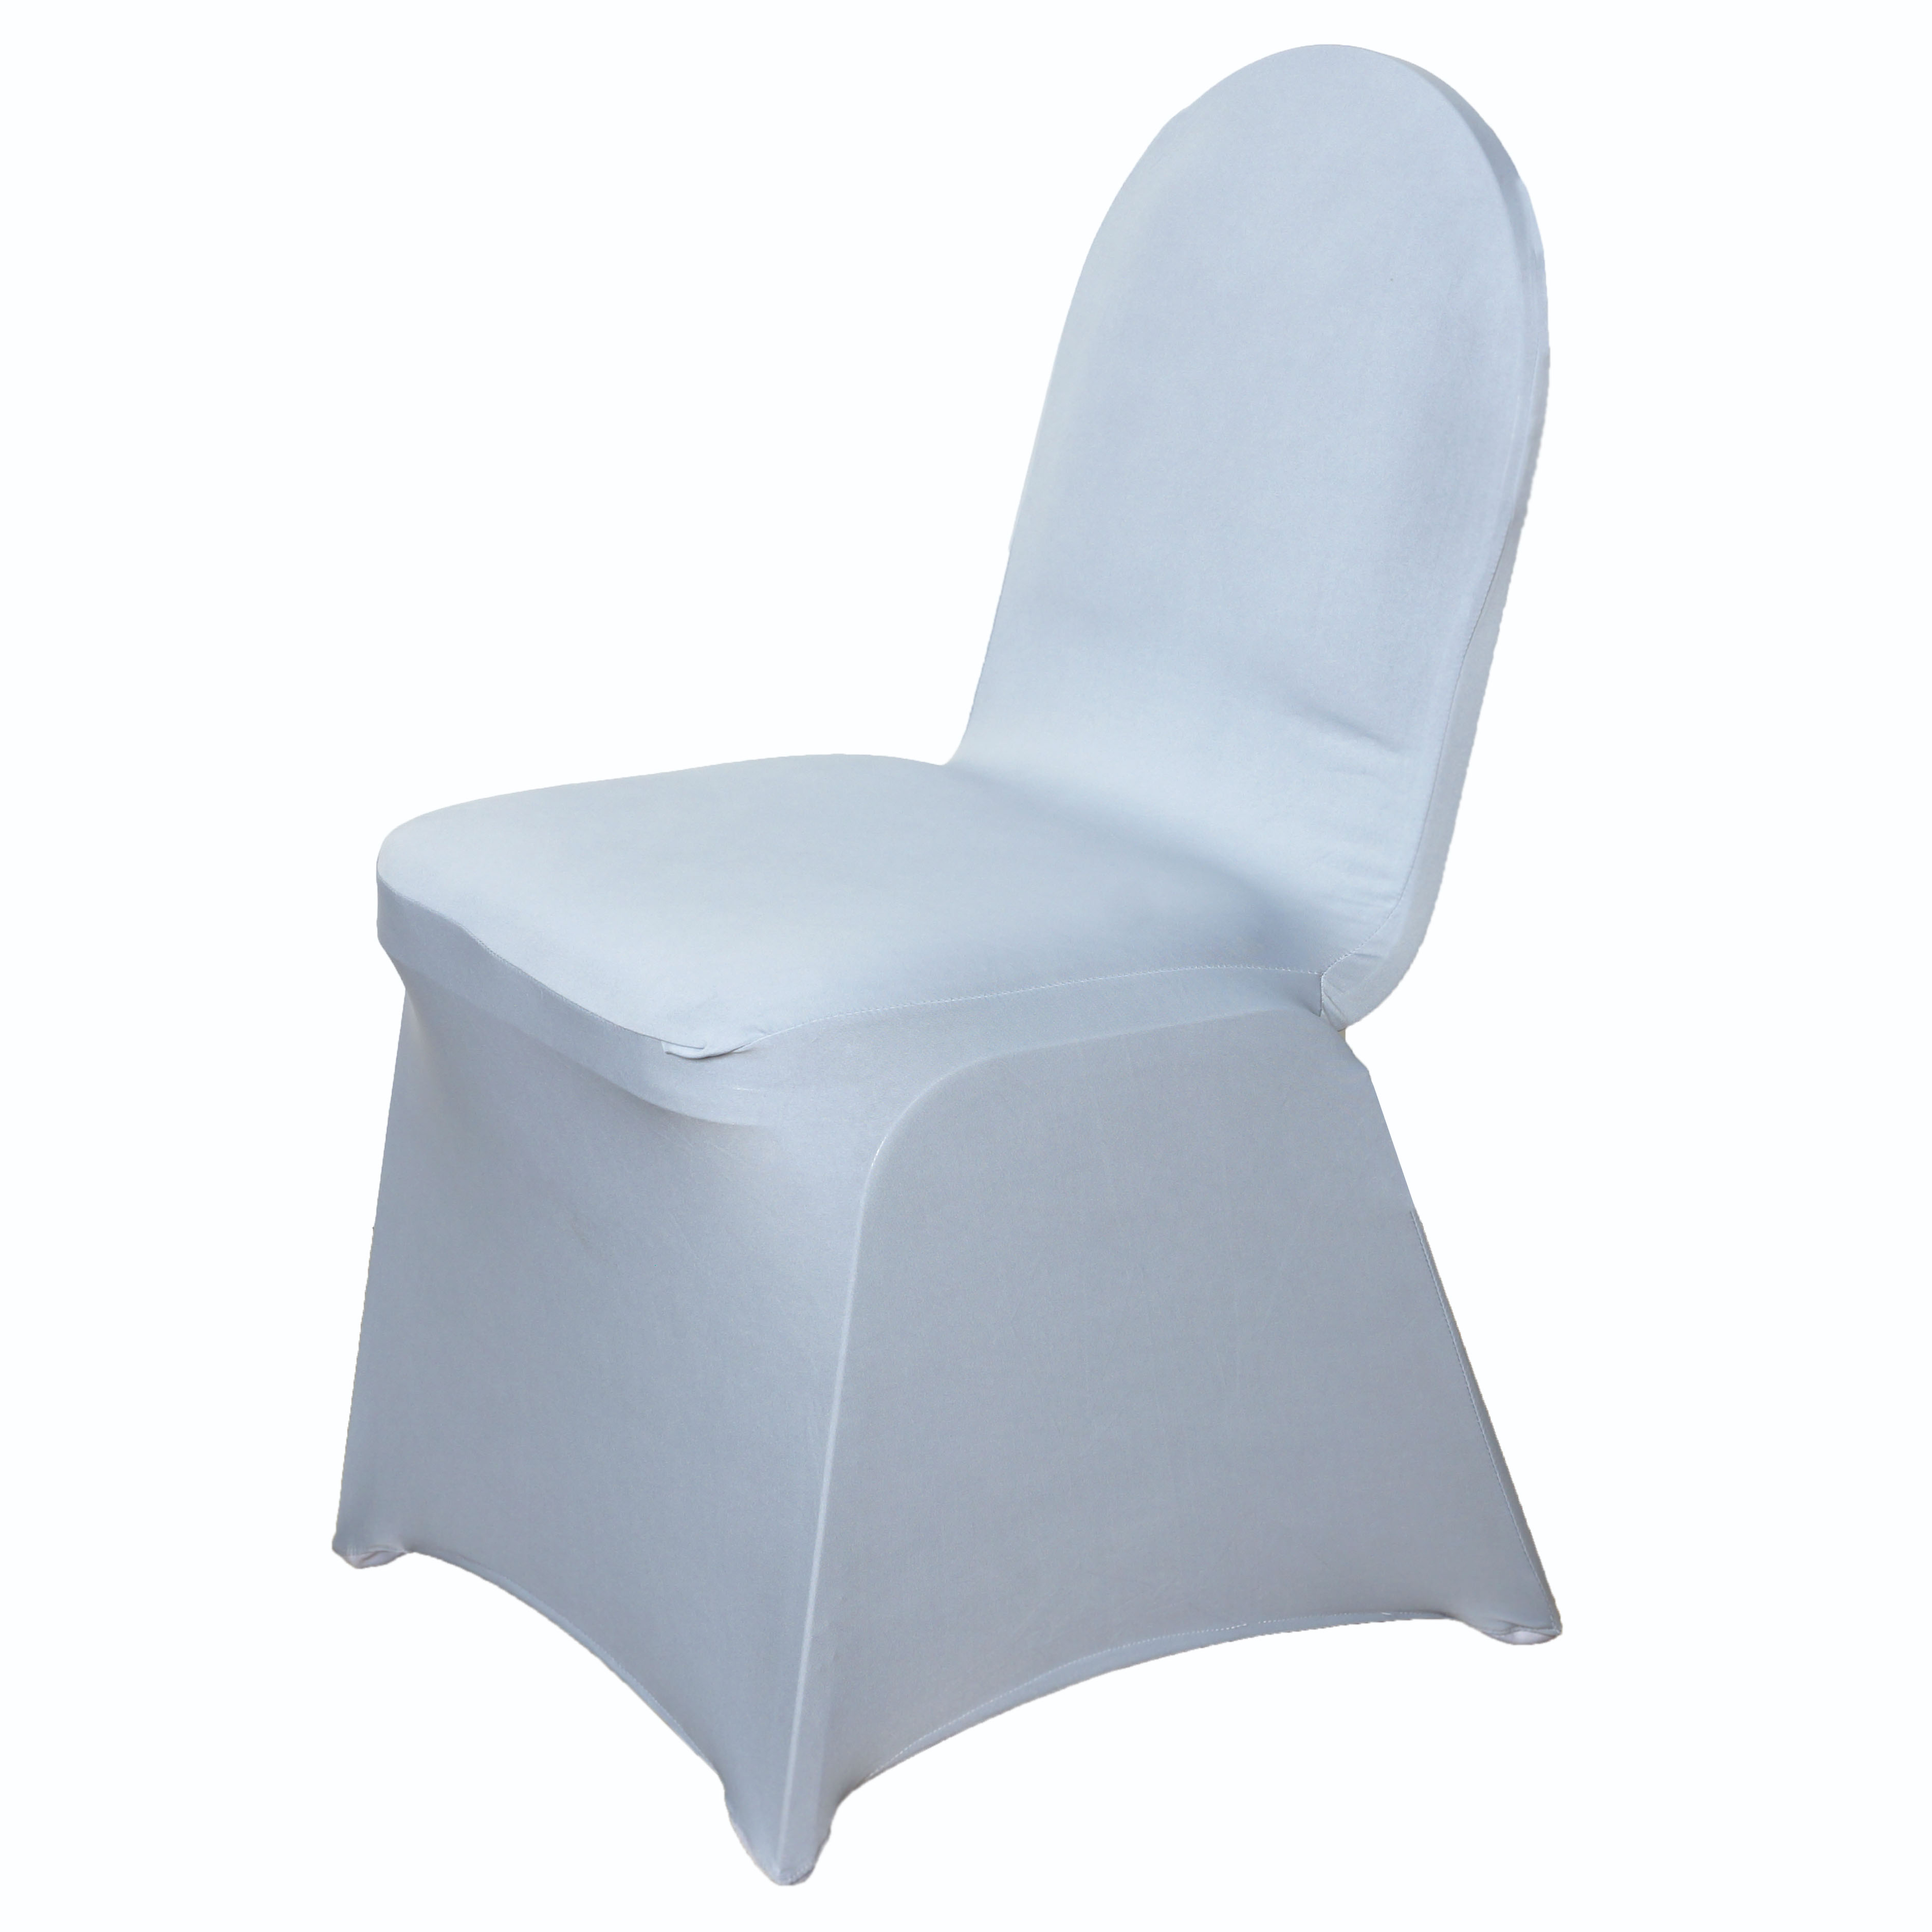 chair covers for sale wedding chair covers for sale r on cute wedding chair covers for sale for stylish decorating ideas